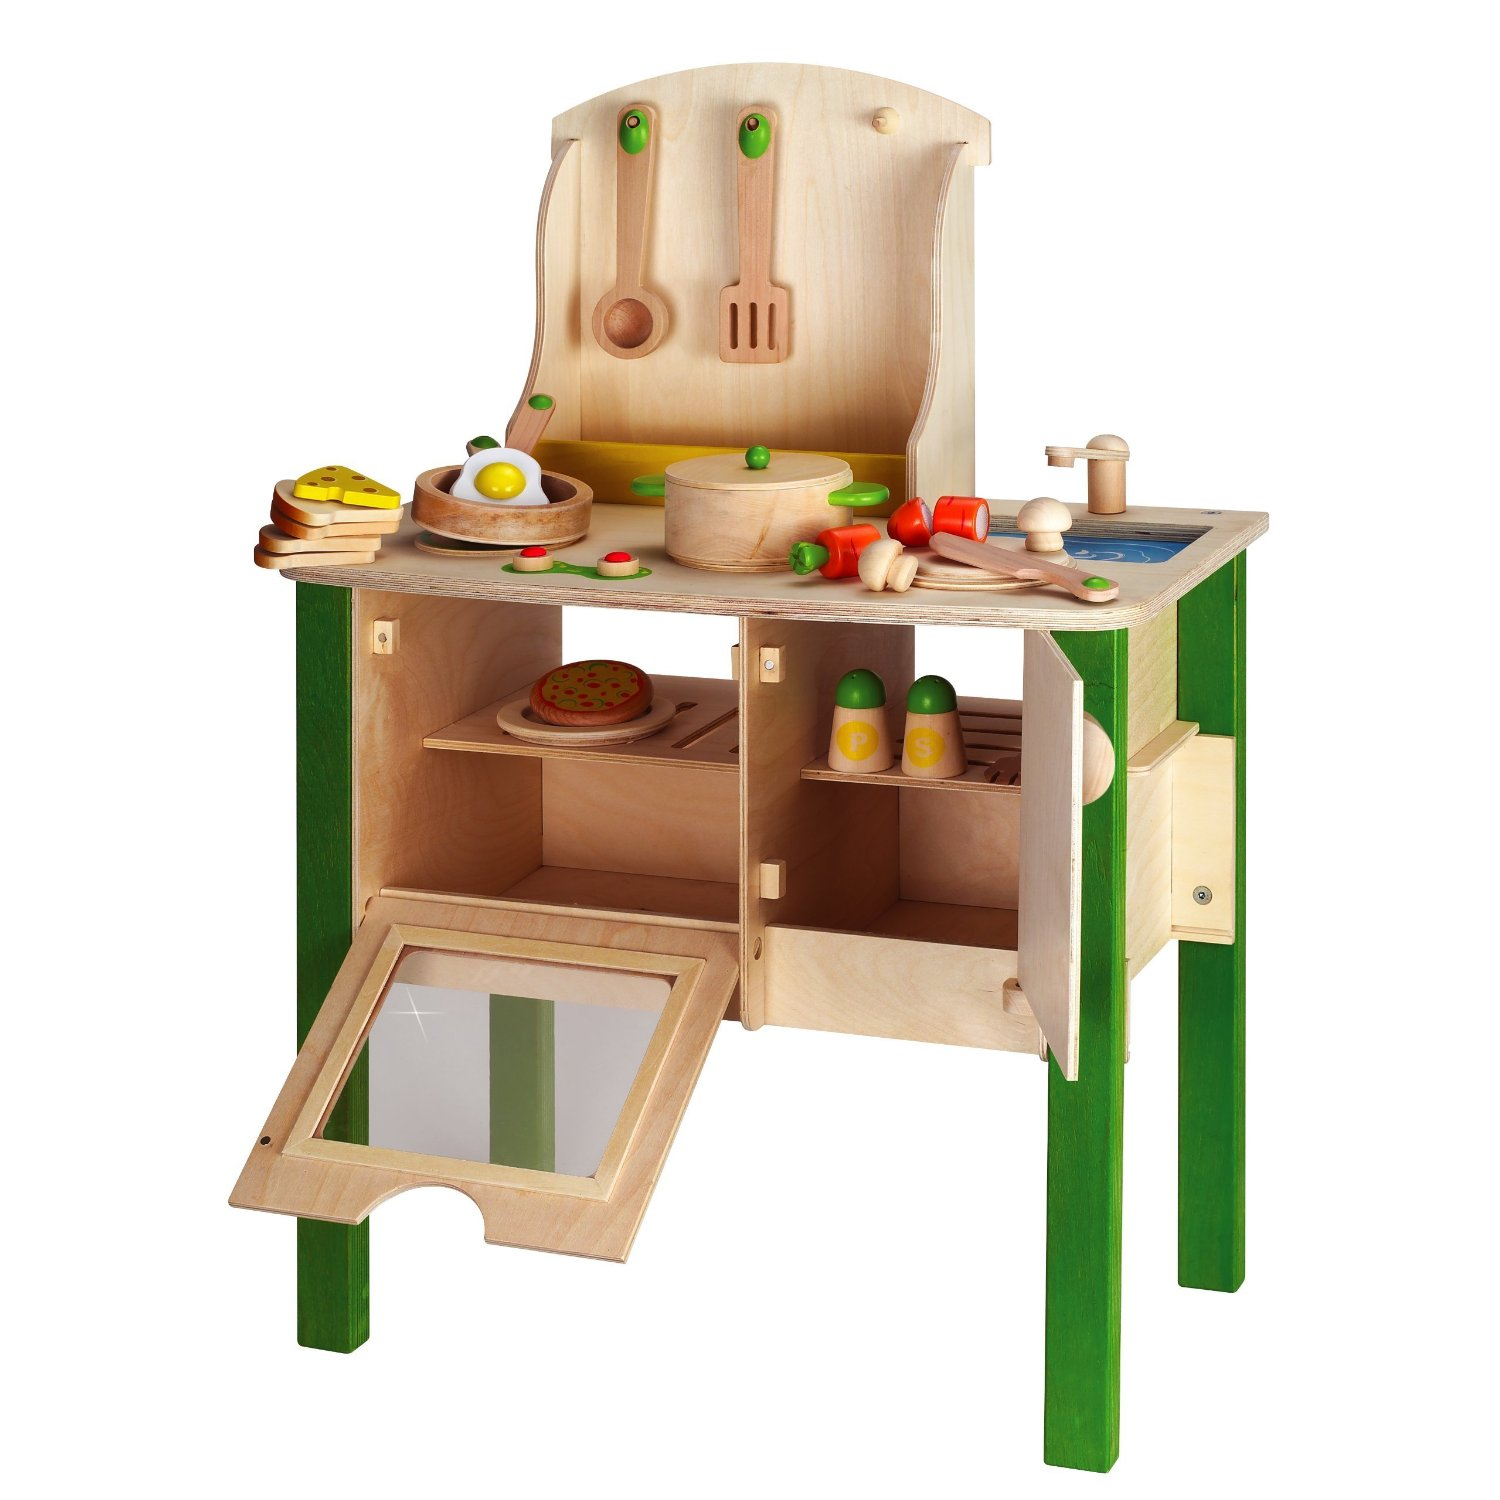 Wooden kitchen set for toddlers Photo - 6